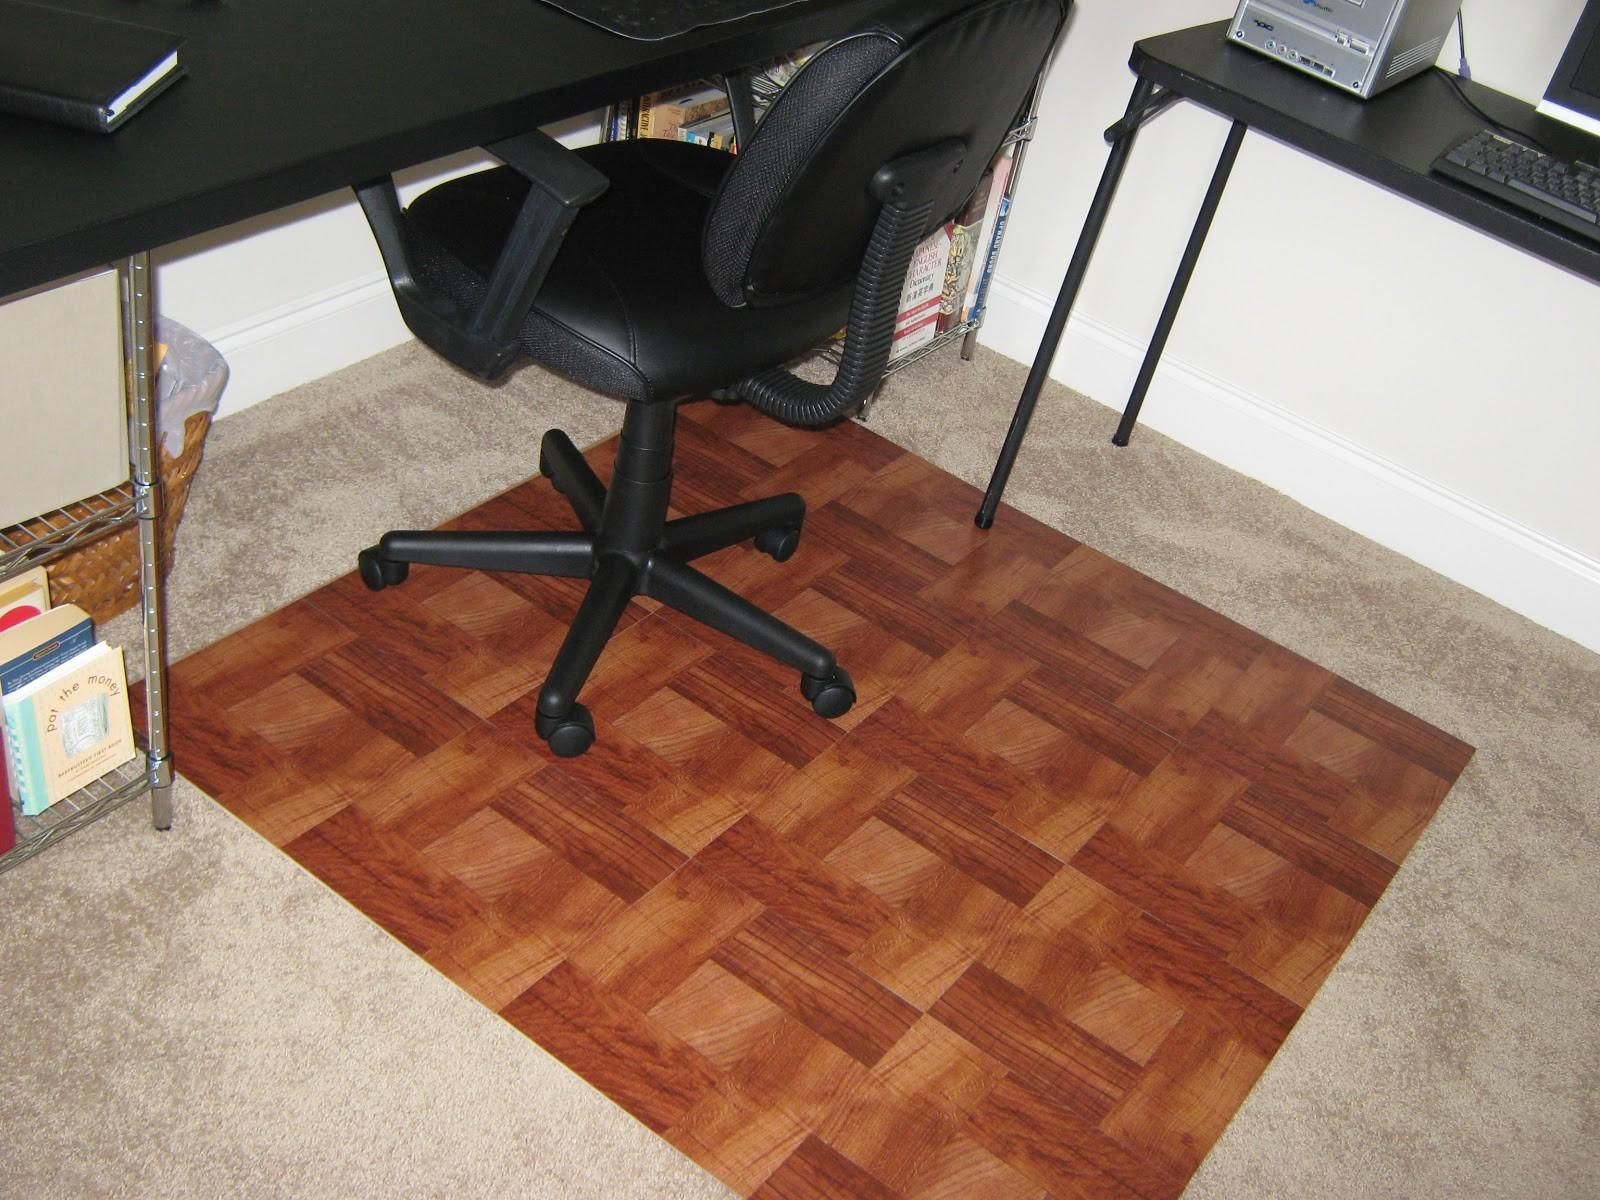 Fake Frugal Diy Wooden Office Chair Mat